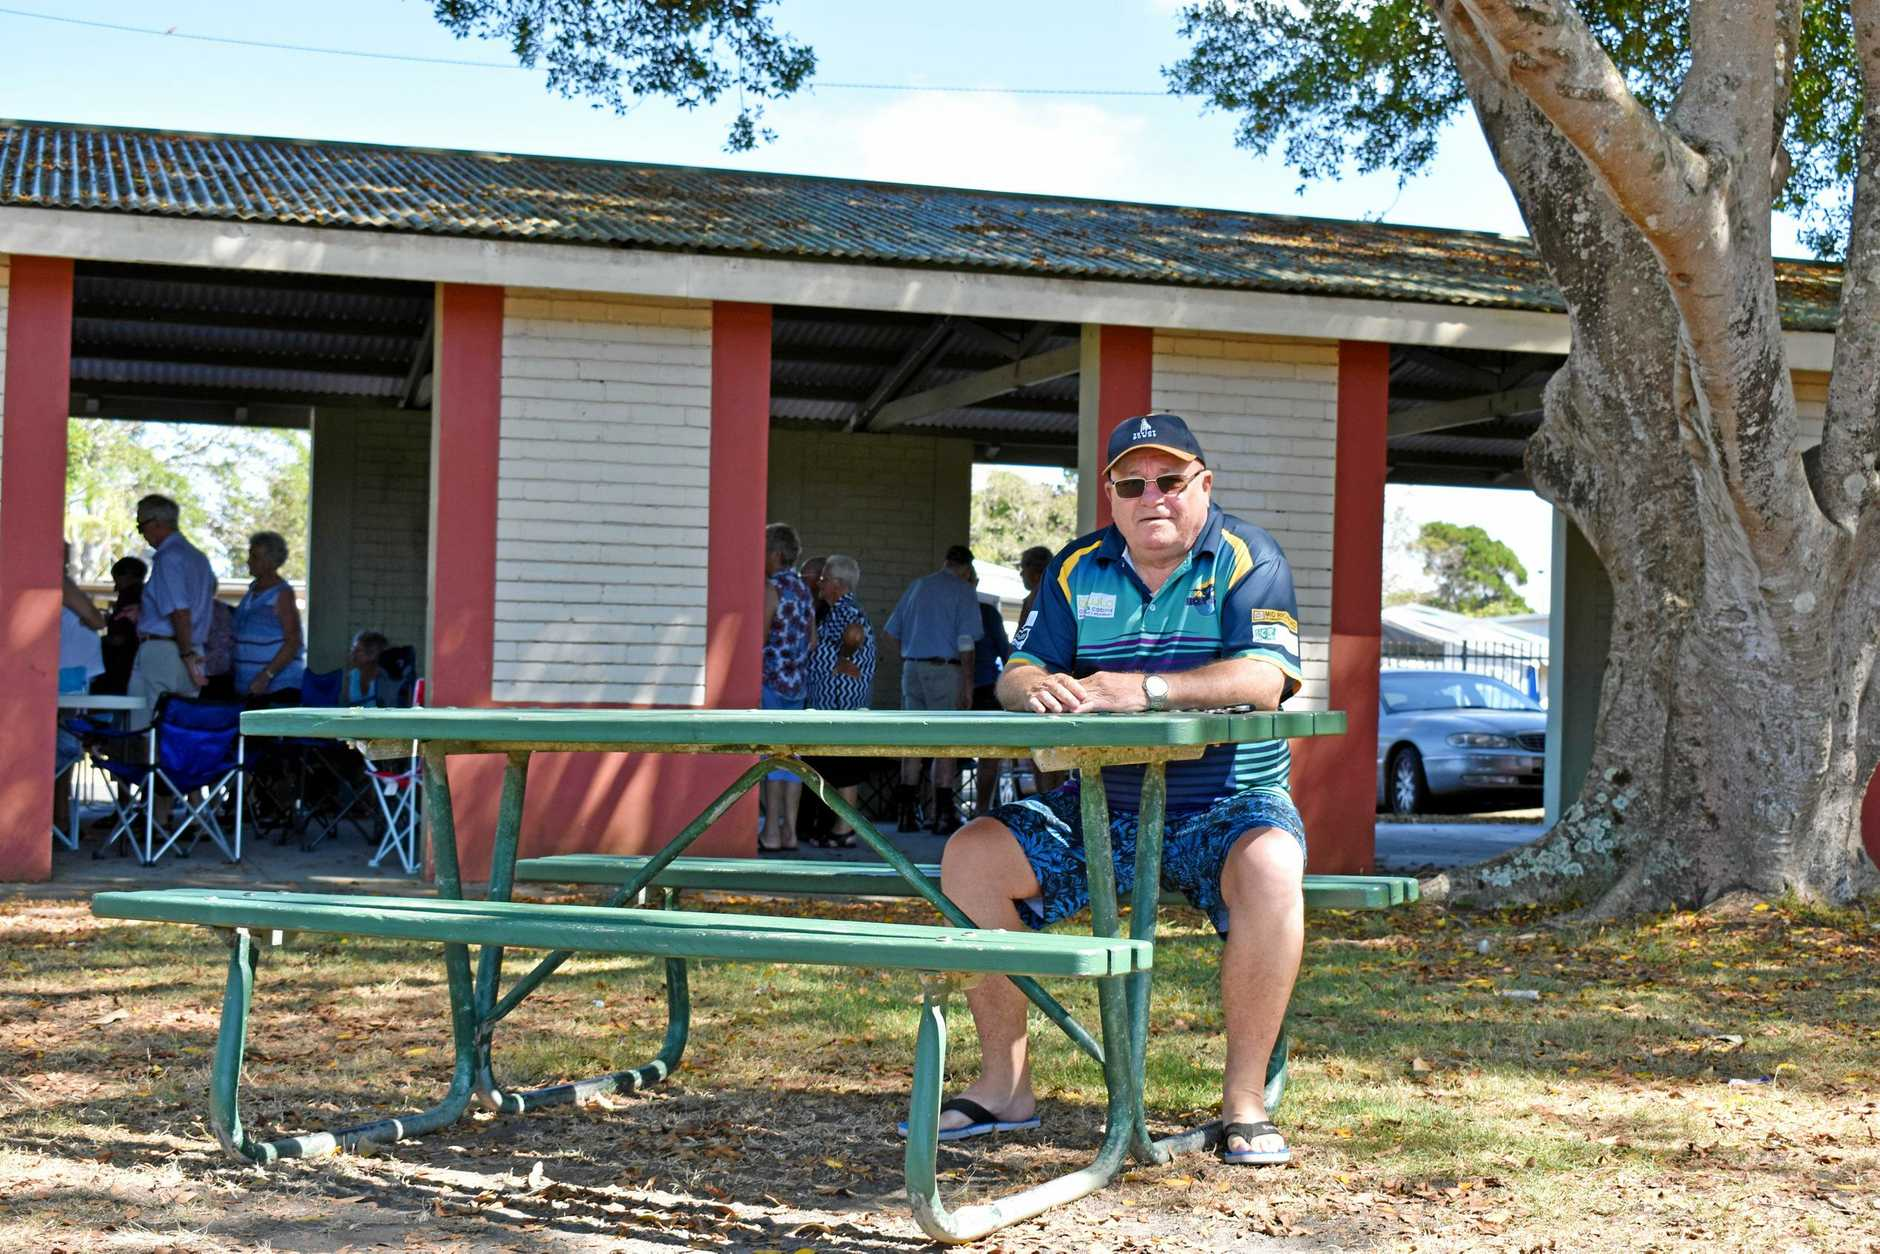 FAMILY GATHERINGS: Resident Gary McDonald is not happy about the demolition of the gazebo at Evans Head.